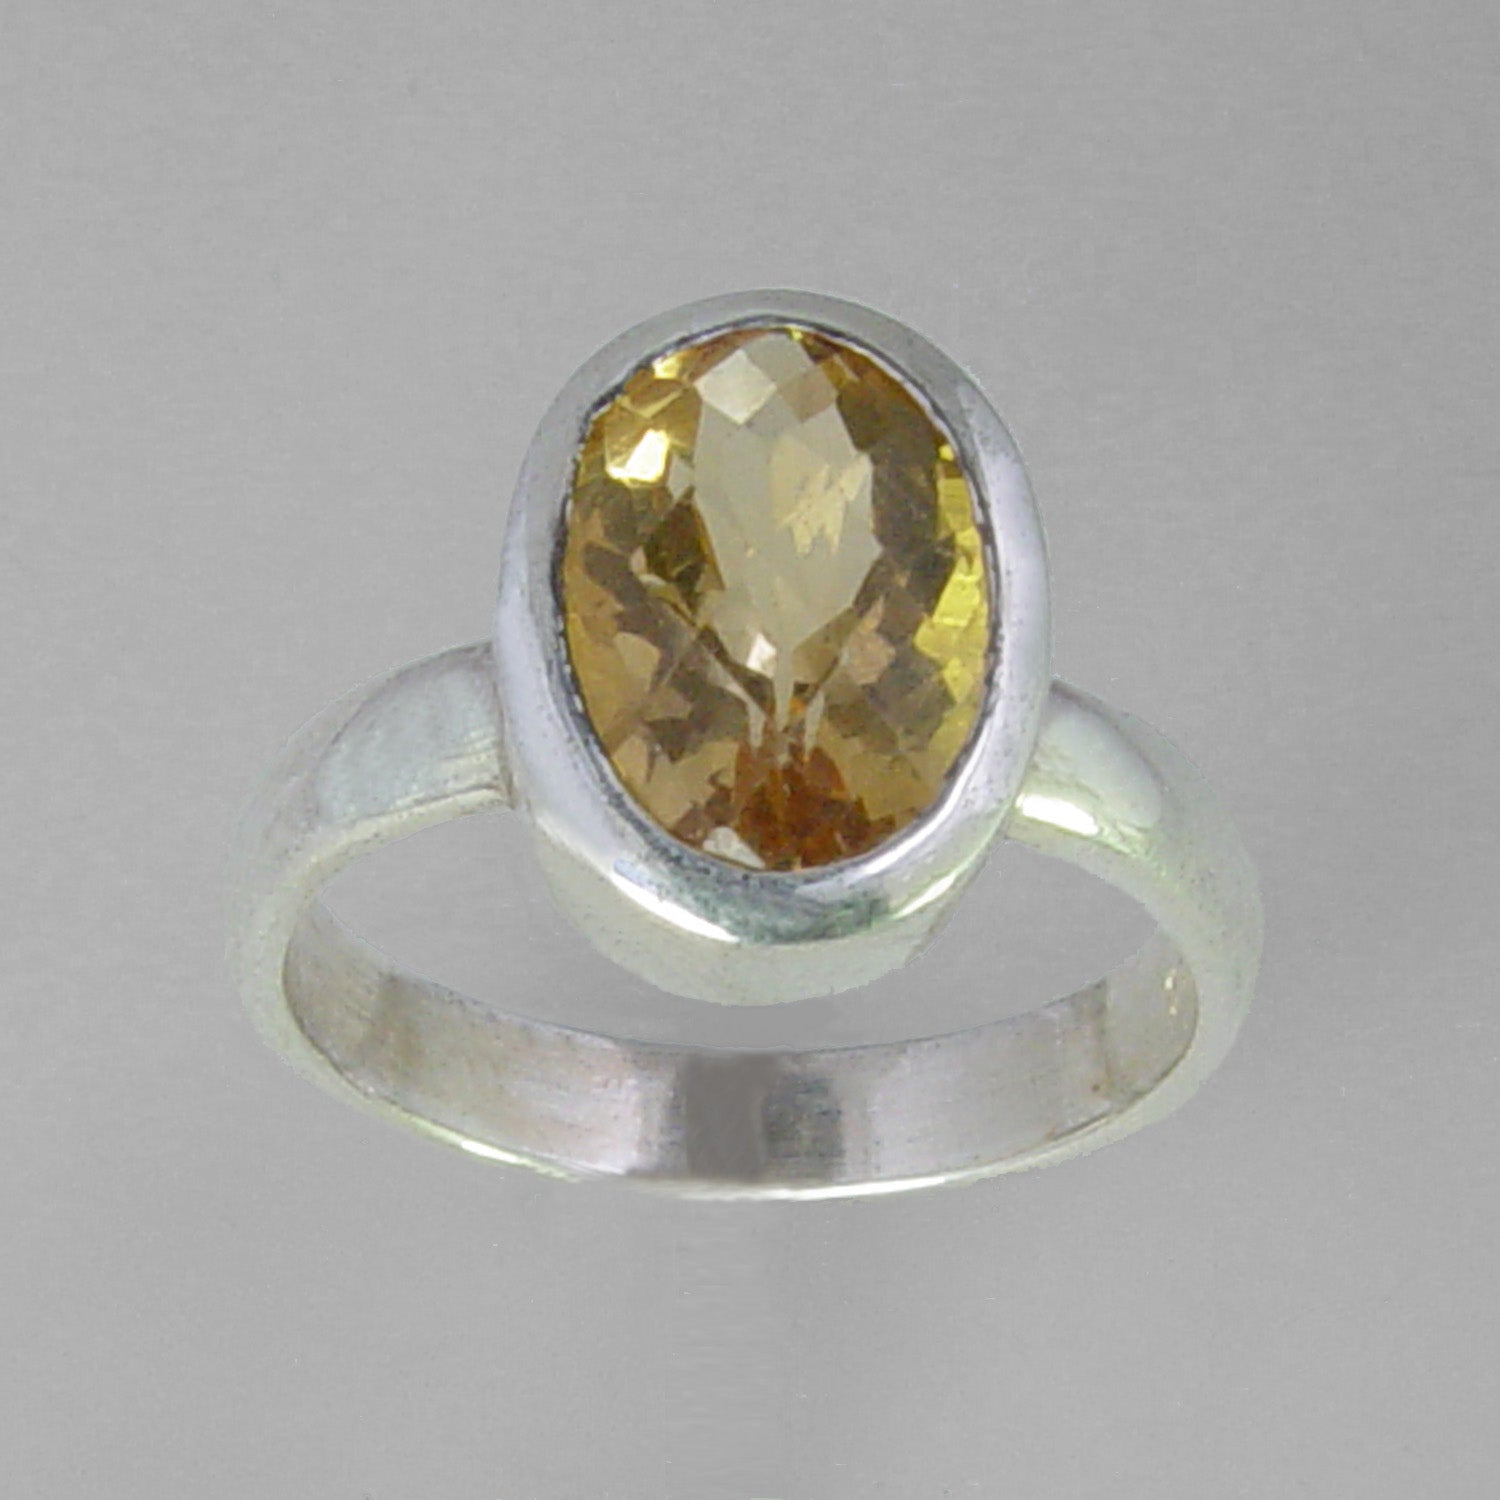 Citrine 4.5 ct Checkerboard Cut Oval Bezel Set Sterling Silver Ring, Size 7.5